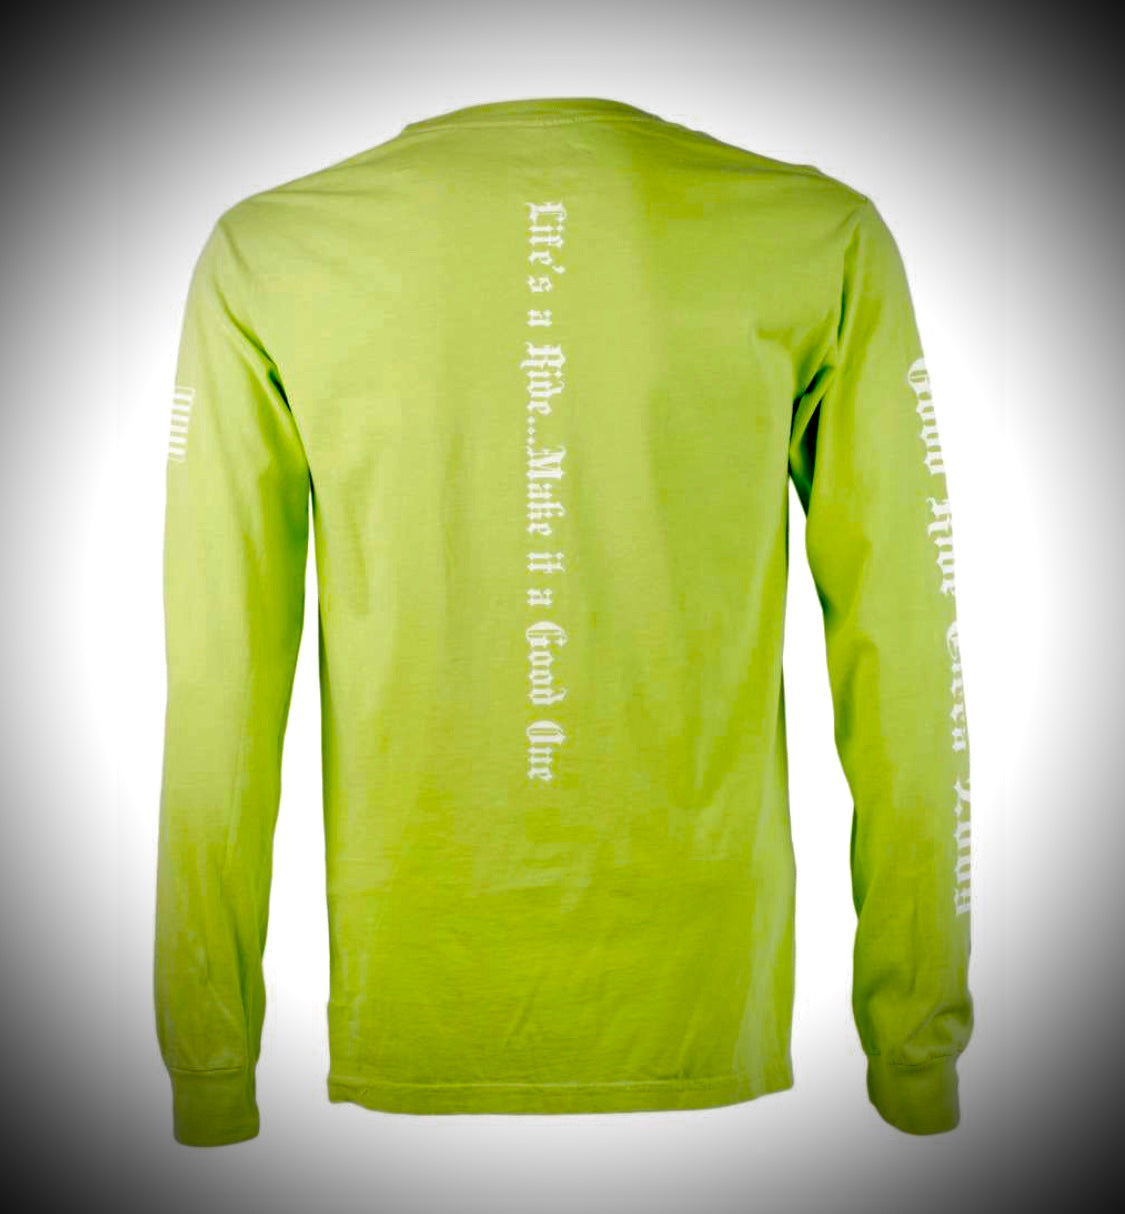 Men's & Women's Lime Green Long Sleeve Tee Shirt w/GR